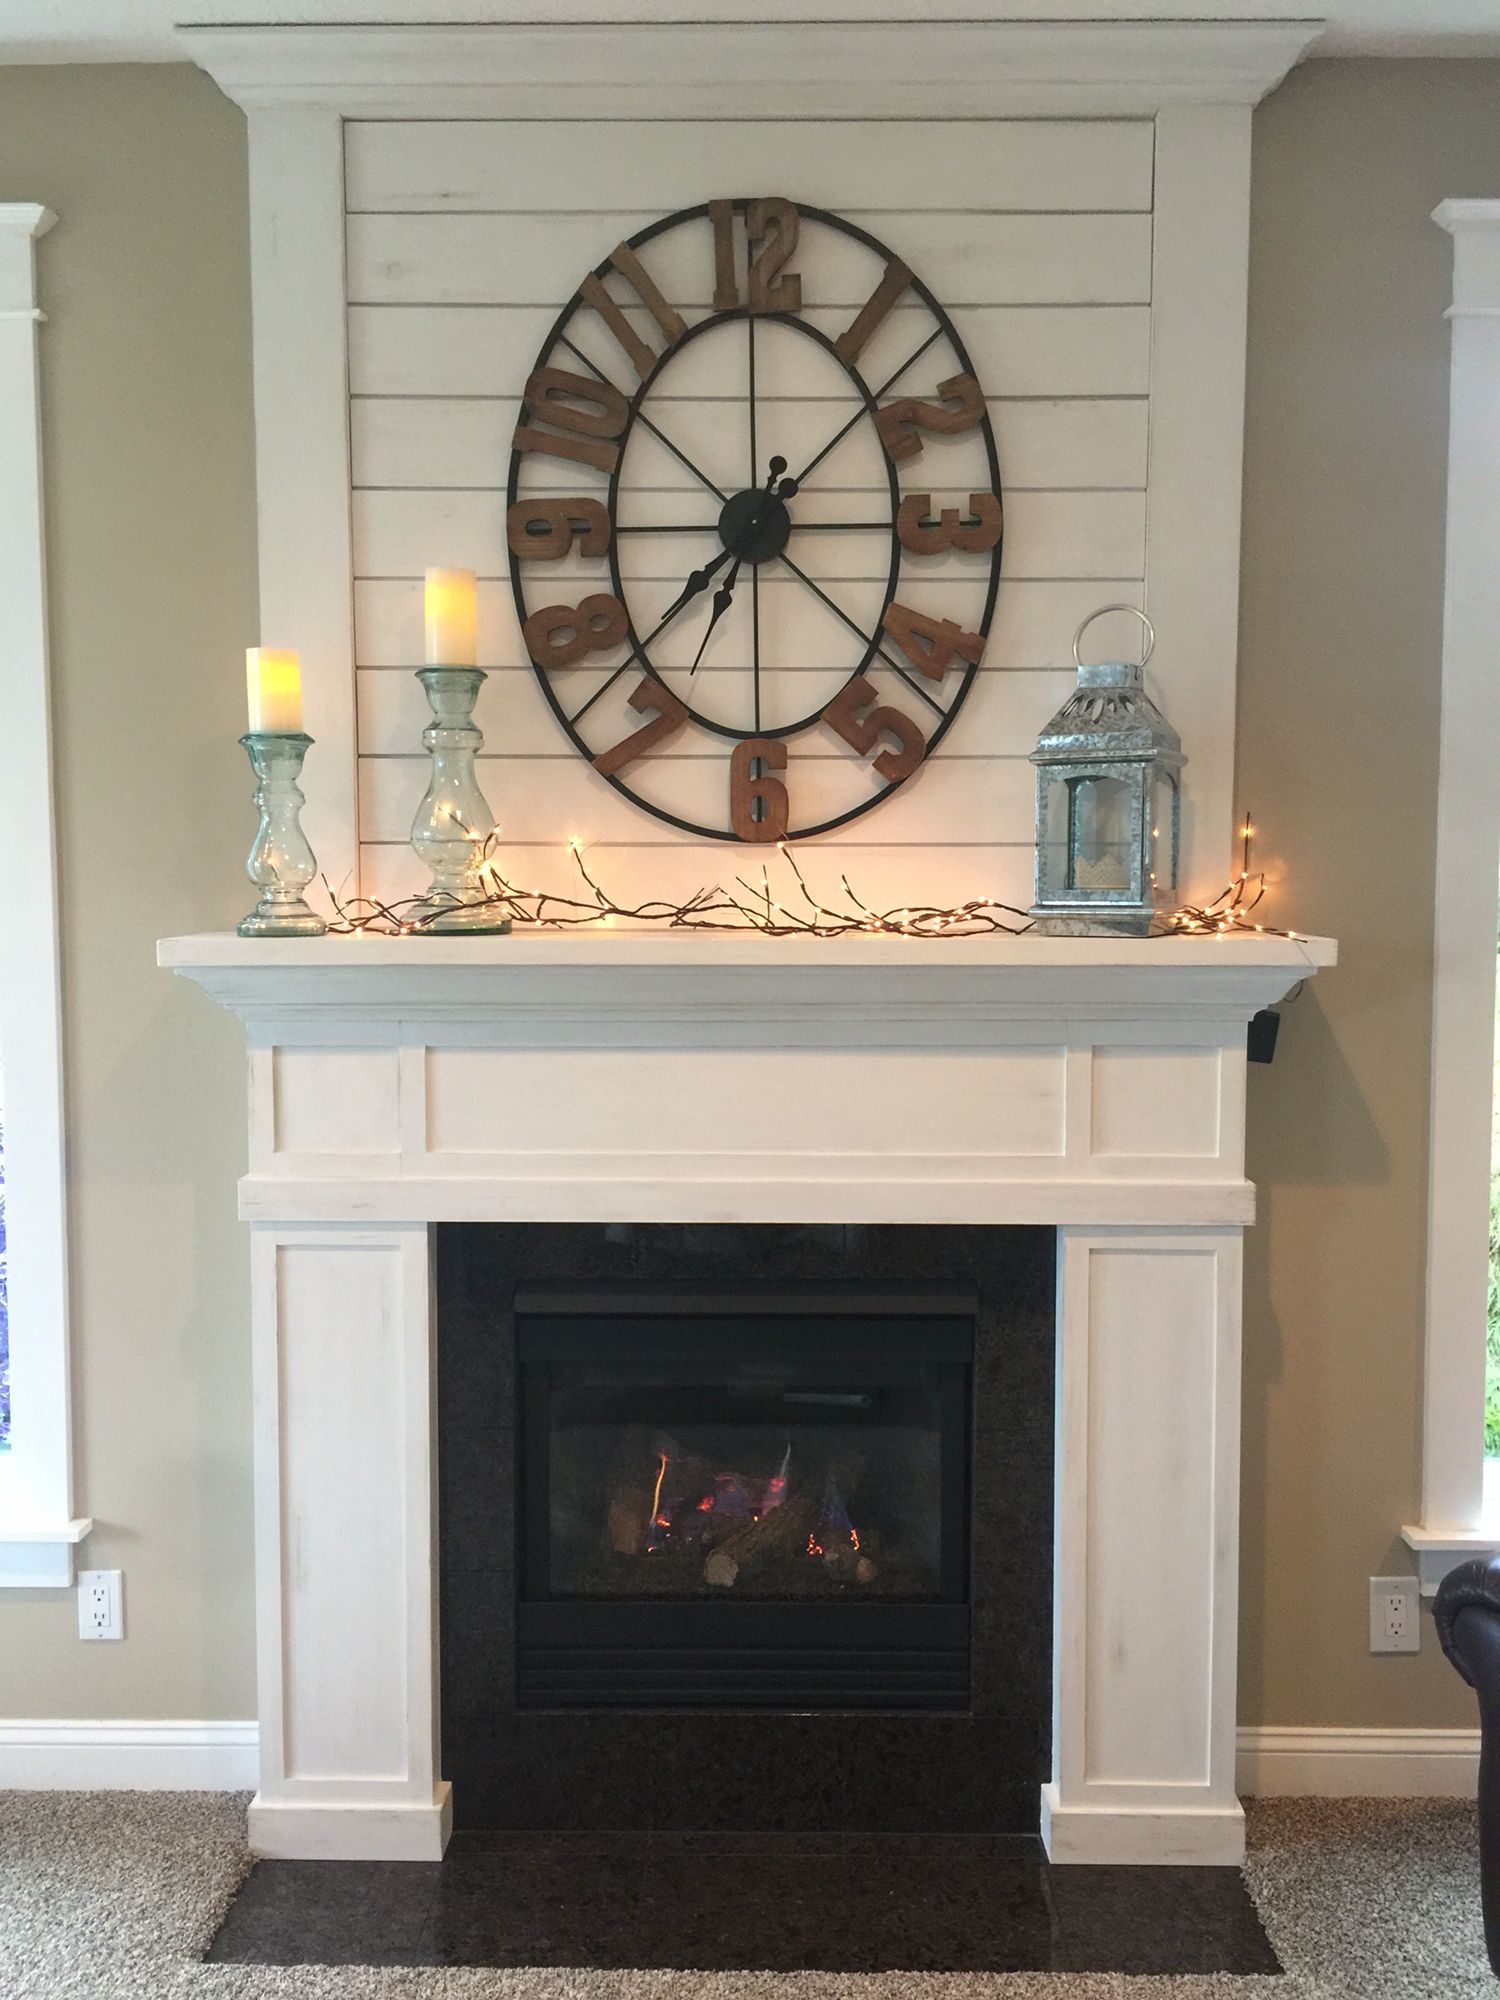 Joanna Gaines Fixer Upper Fireplace Mantels